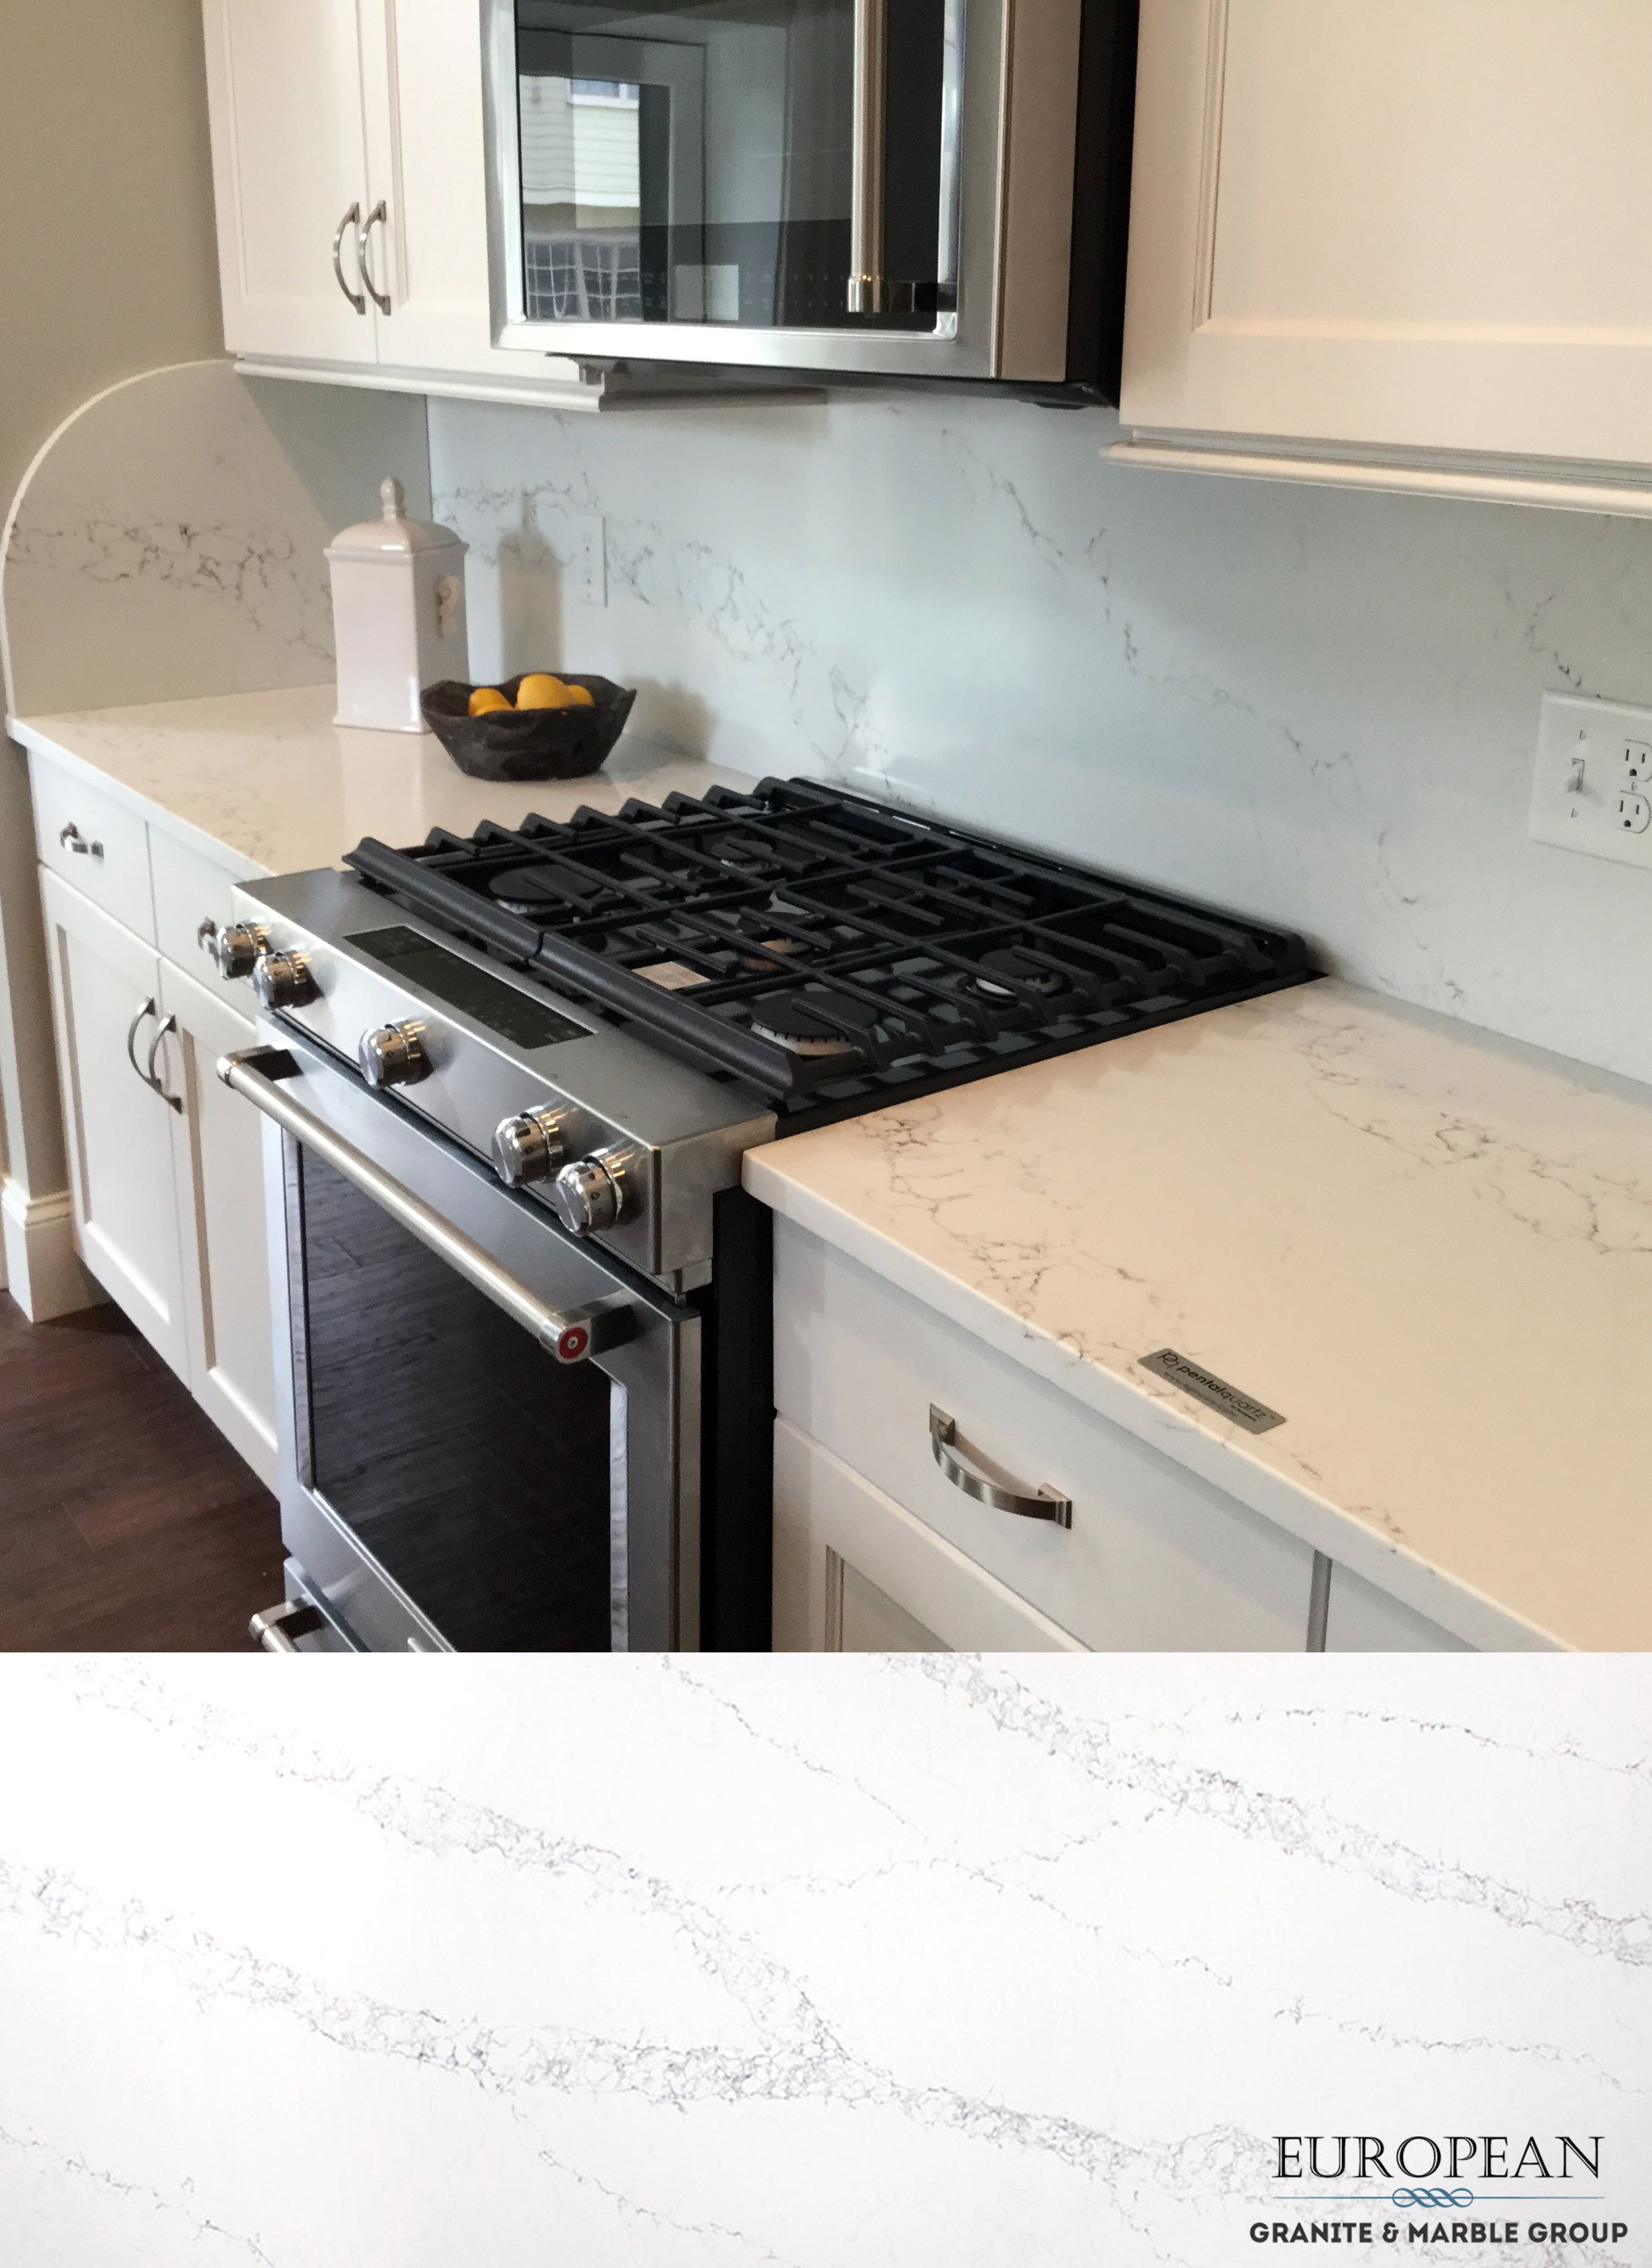 Our Non Porous Quartz Line Is Resistant To Scratches Heat Stains And Water